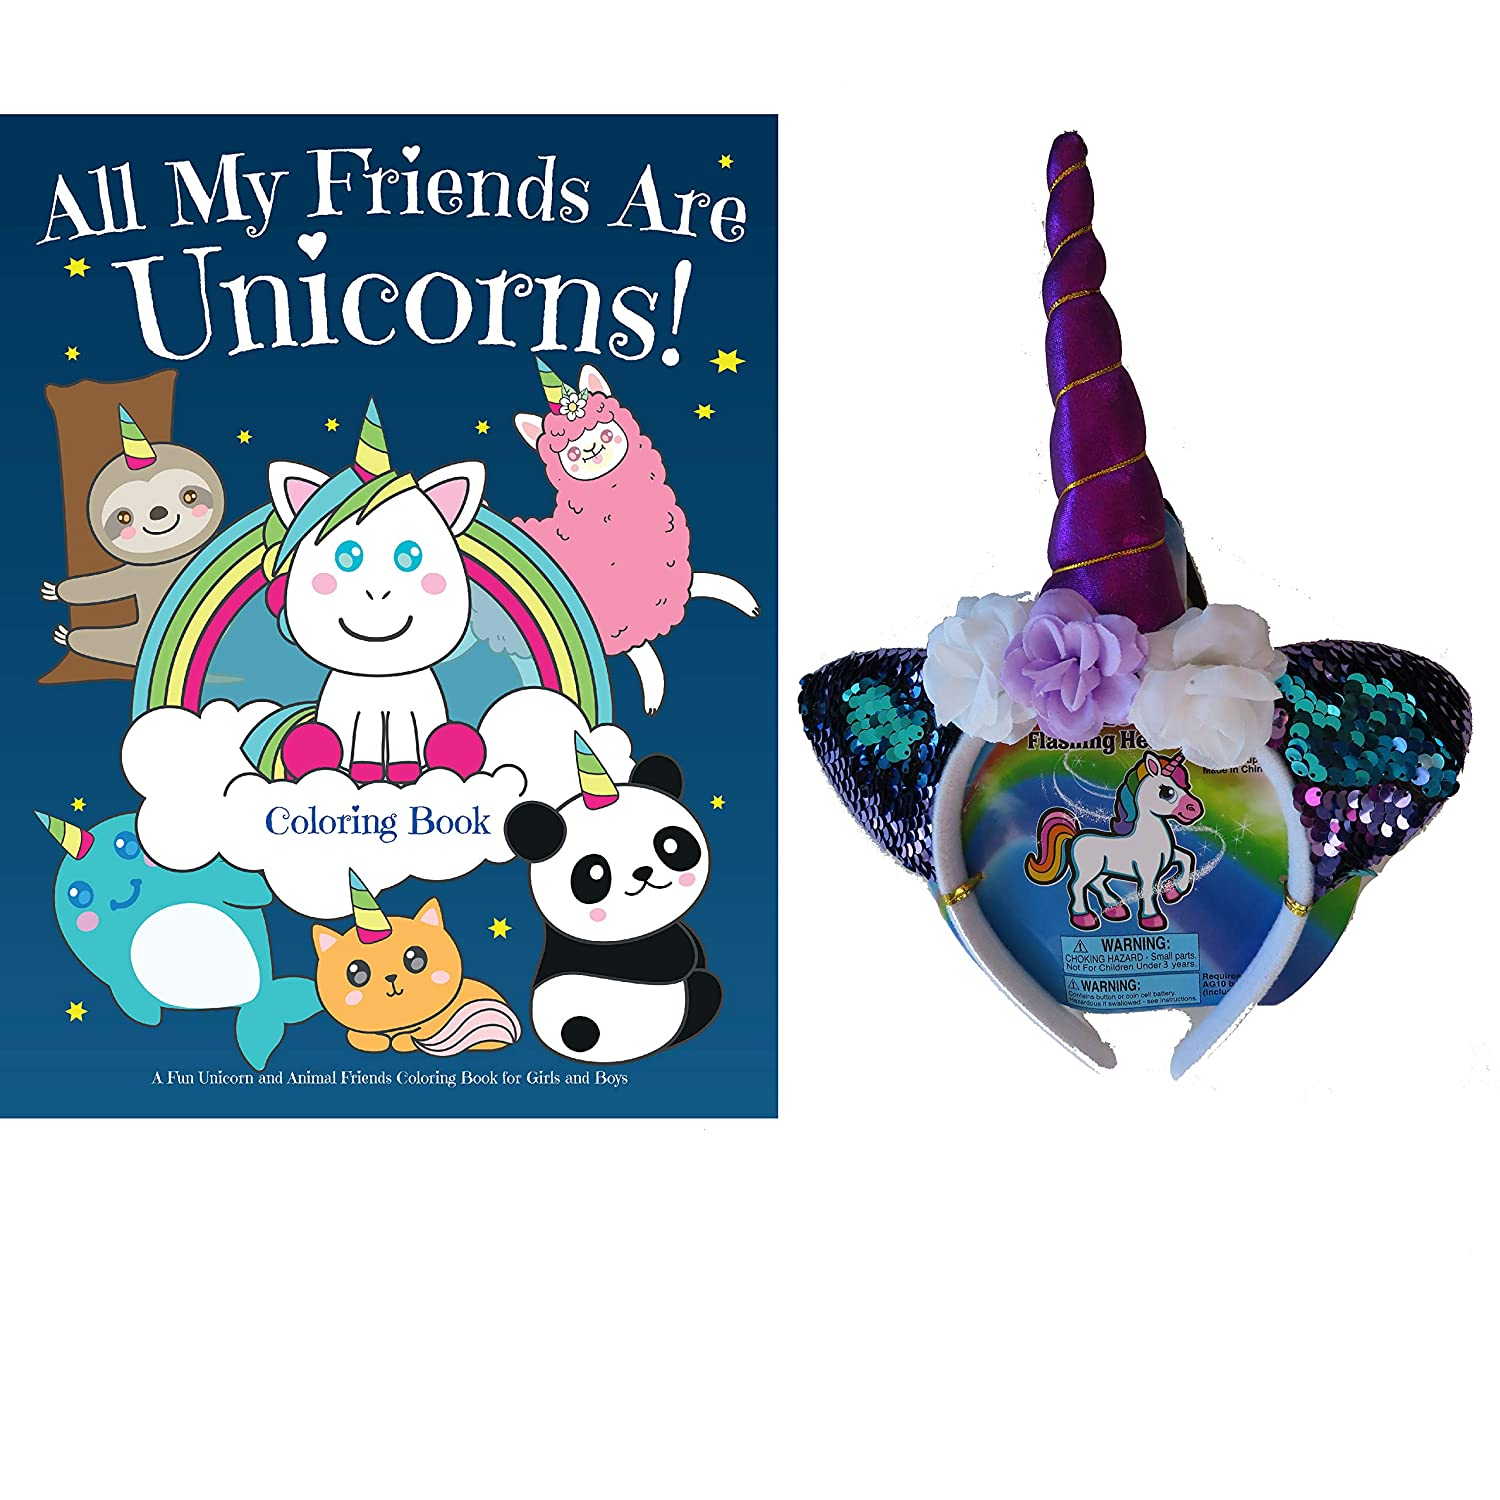 Unicorn Headband and All My Friends are Unicorns Rhyming Story and Coloring Book Rainbow Unicorn Gift Set for Girls